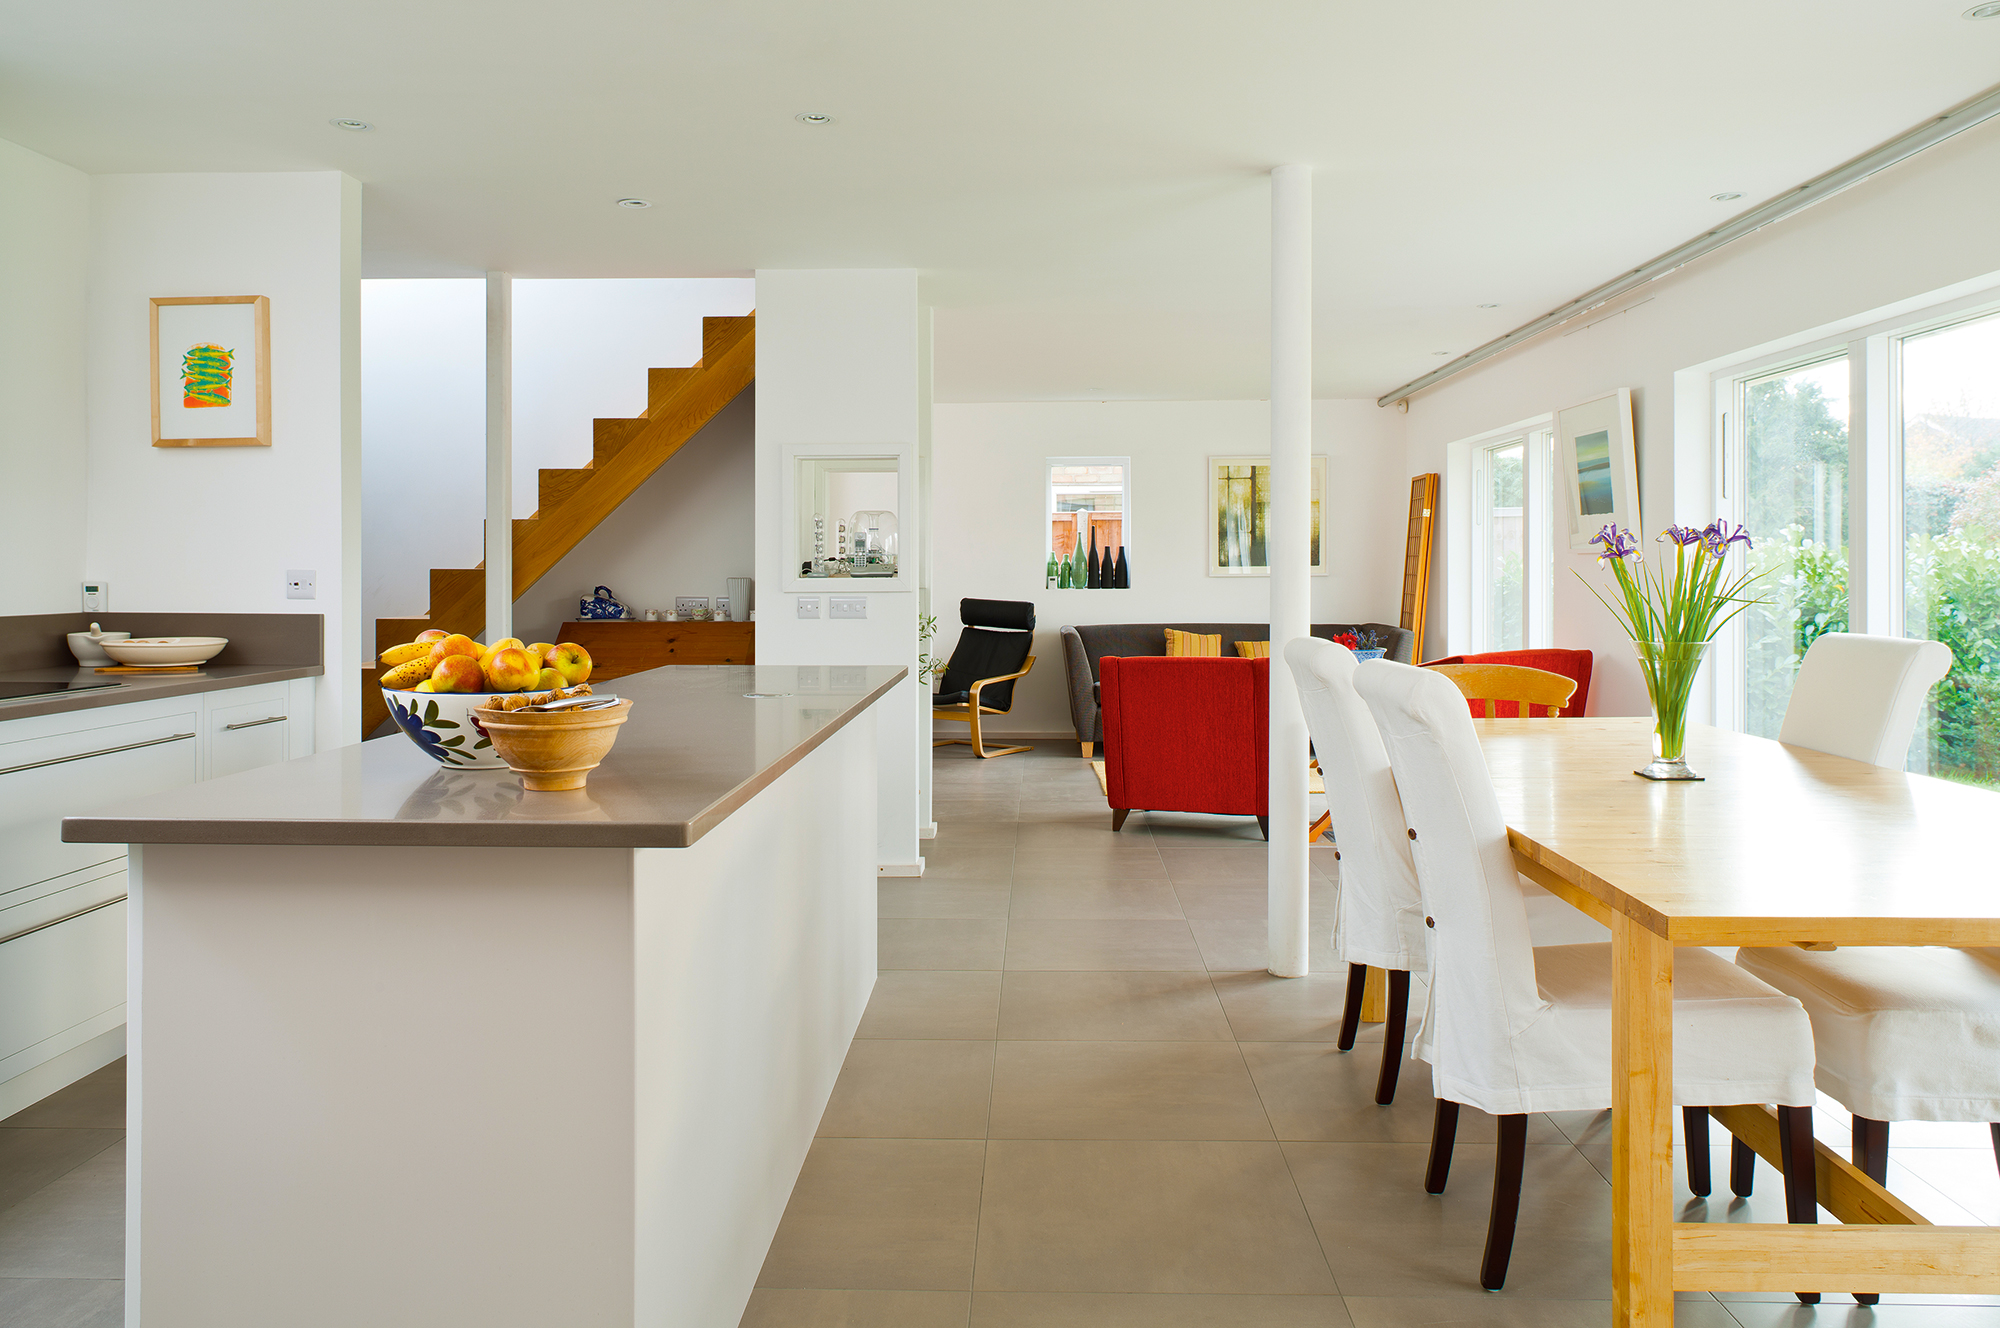 Open plan kitchen-dining-living space in Bungalow renovation by Mole Architects